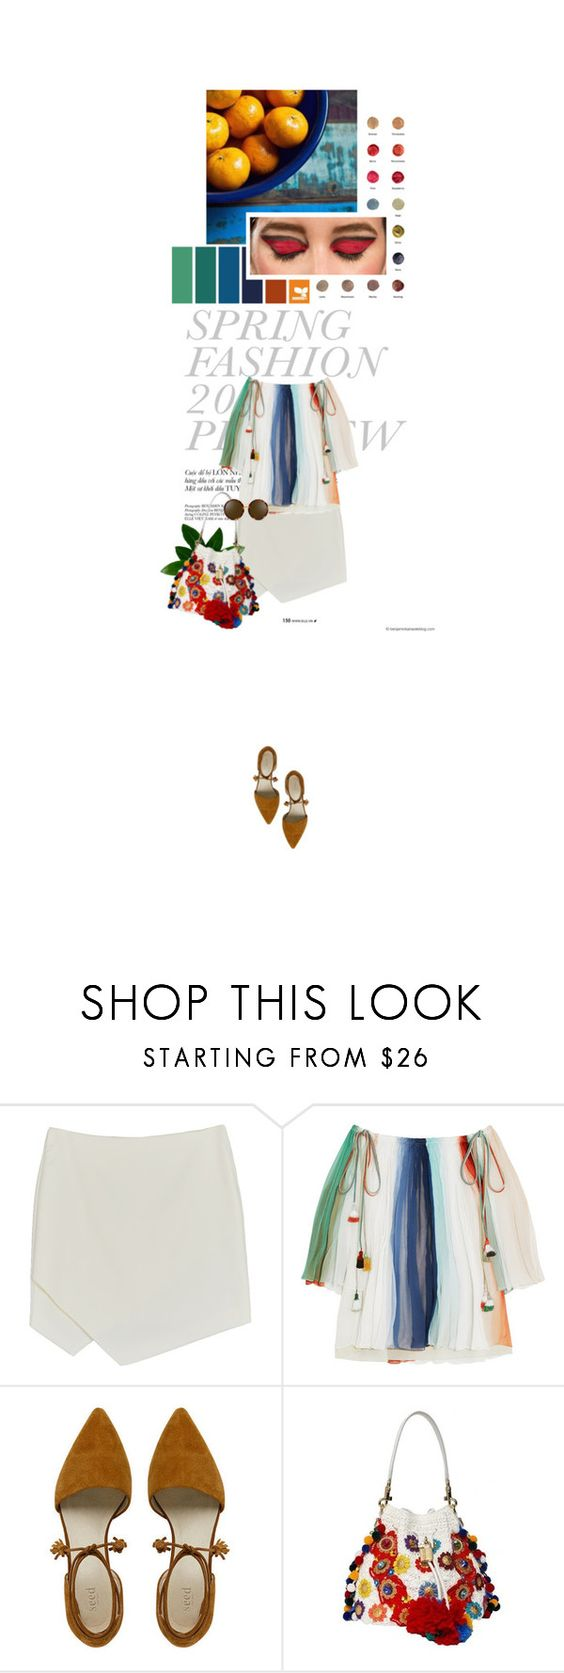 """""""5.17 Cake by the Ocean"""" by monalisas-and-madhatters ❤ liked on Polyvore featuring Seed Design, Chloé, La Petite Robe di Chiara Boni, Dolce&Gabbana and Linda Farrow"""